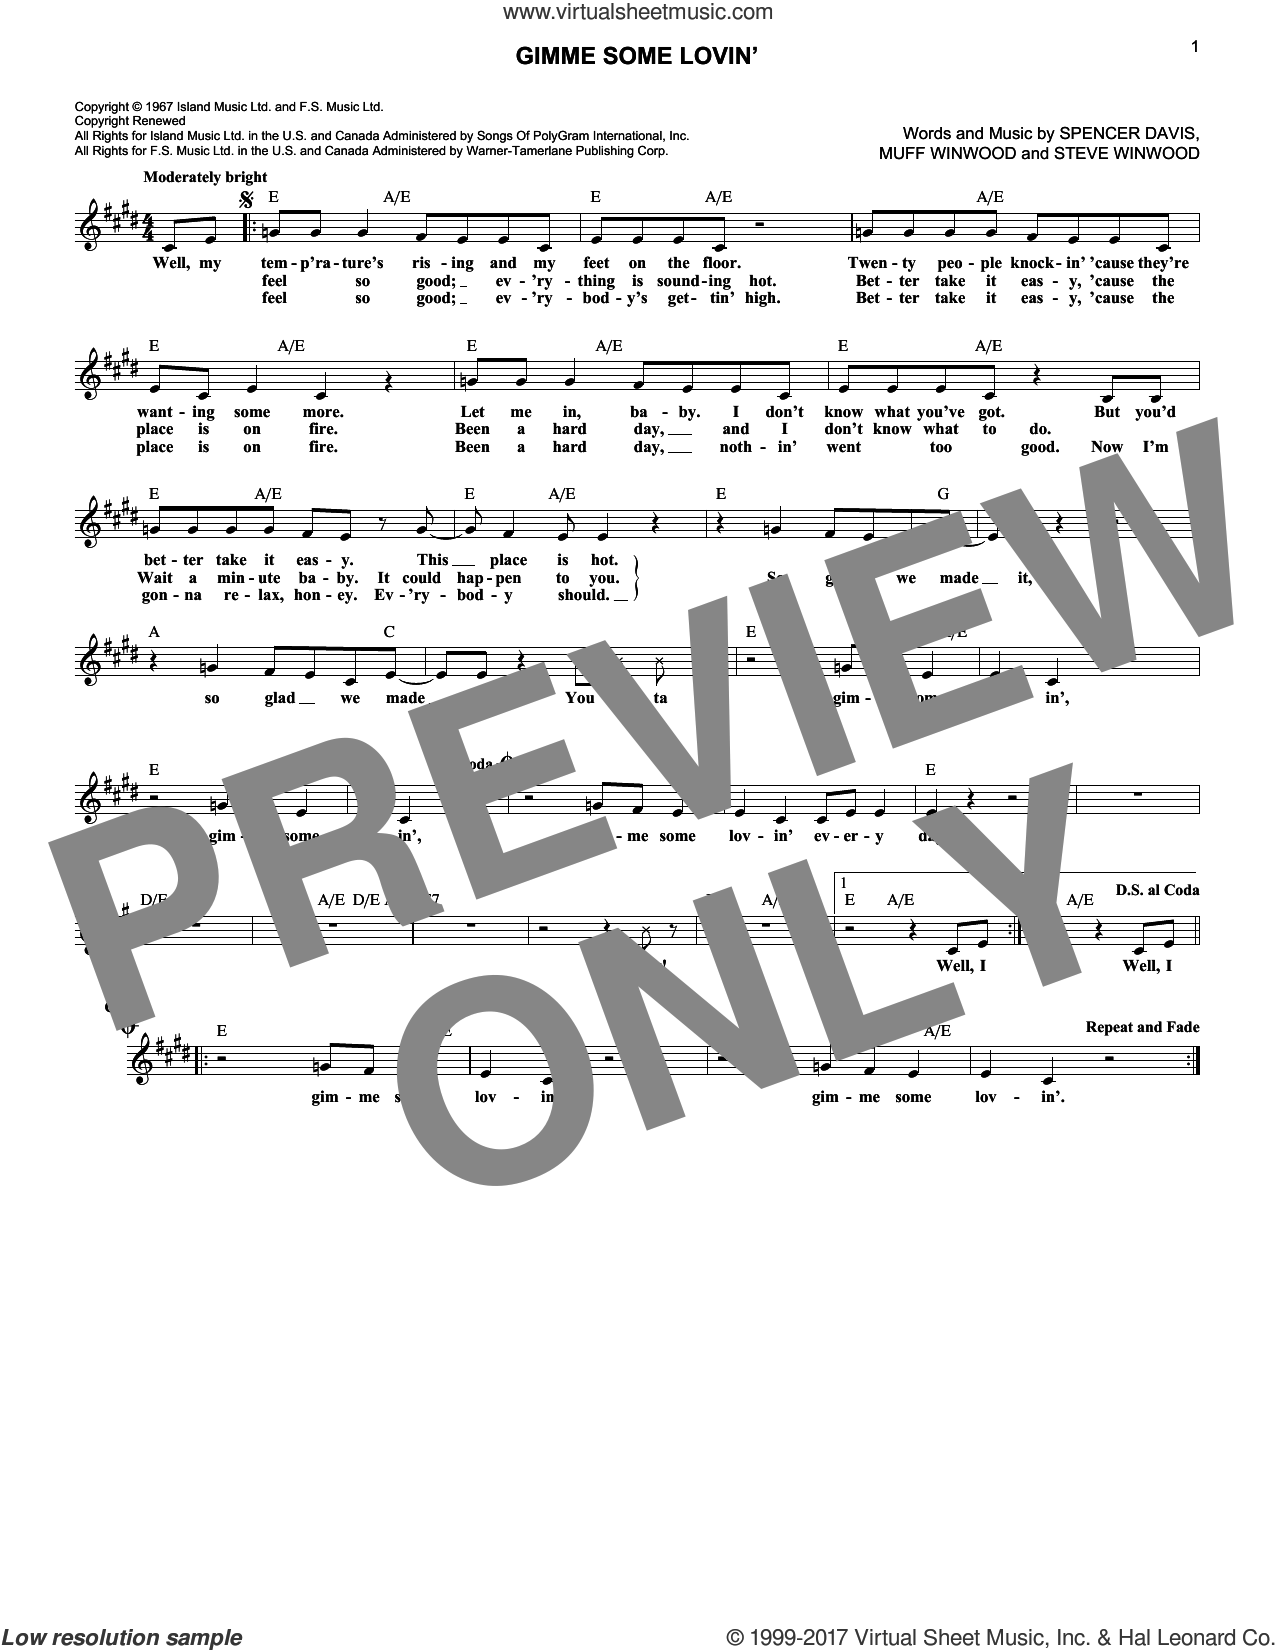 Gimme Some Lovin' sheet music for voice and other instruments (fake book) by The Spencer Davis Group, Muff Winwood, Spencer Davis and Steve Winwood, intermediate skill level